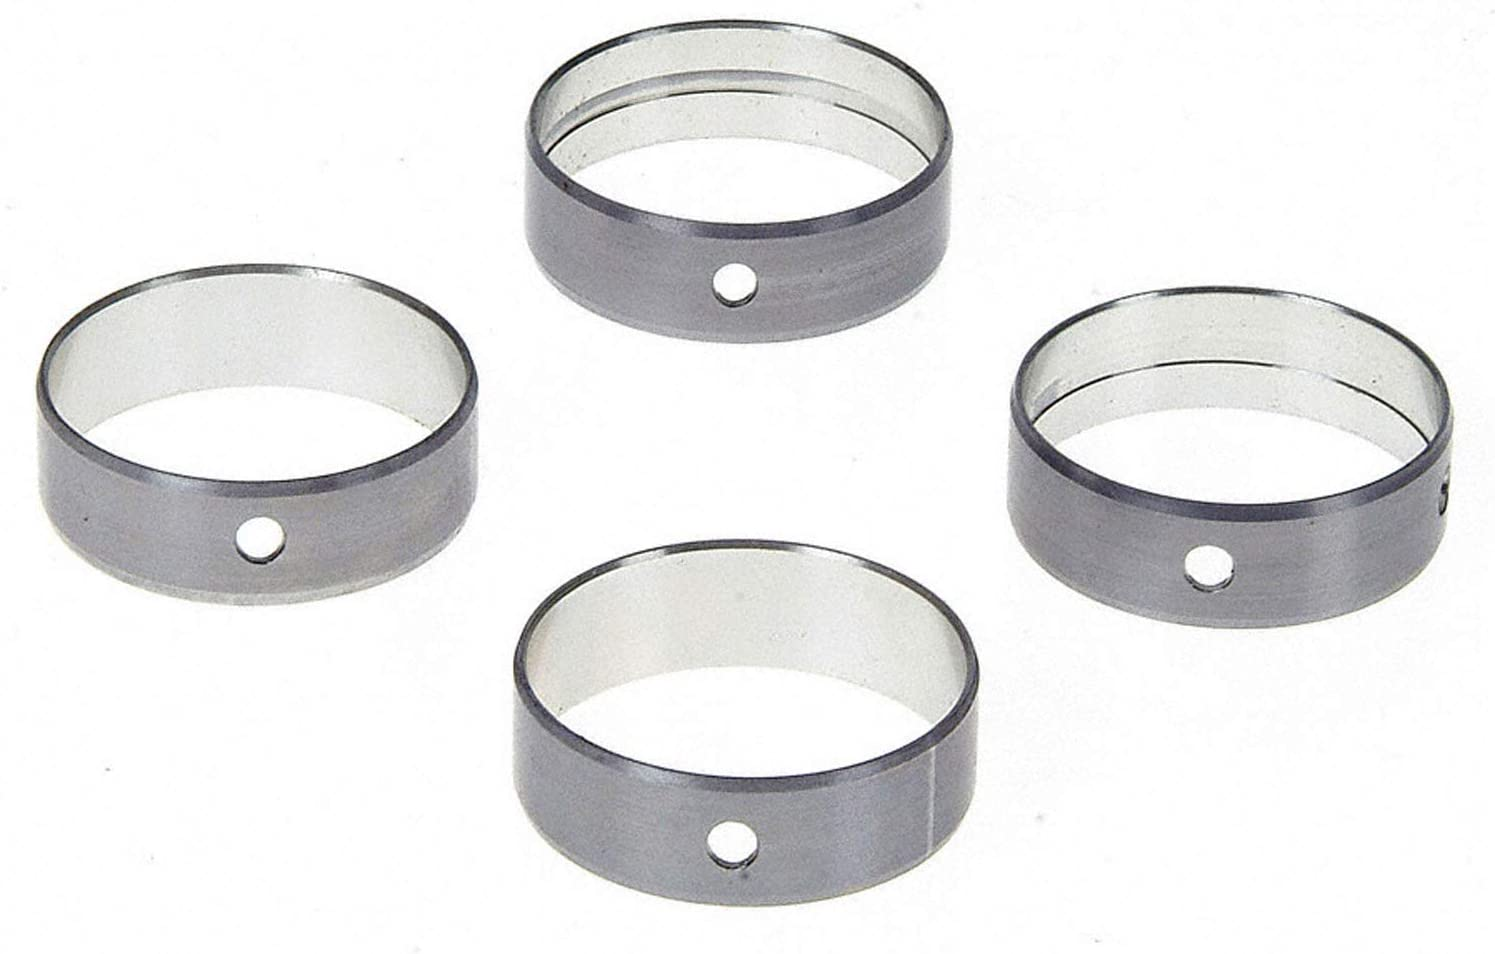 Camshaft Max 84% OFF Bearing Set Fixed price for sale